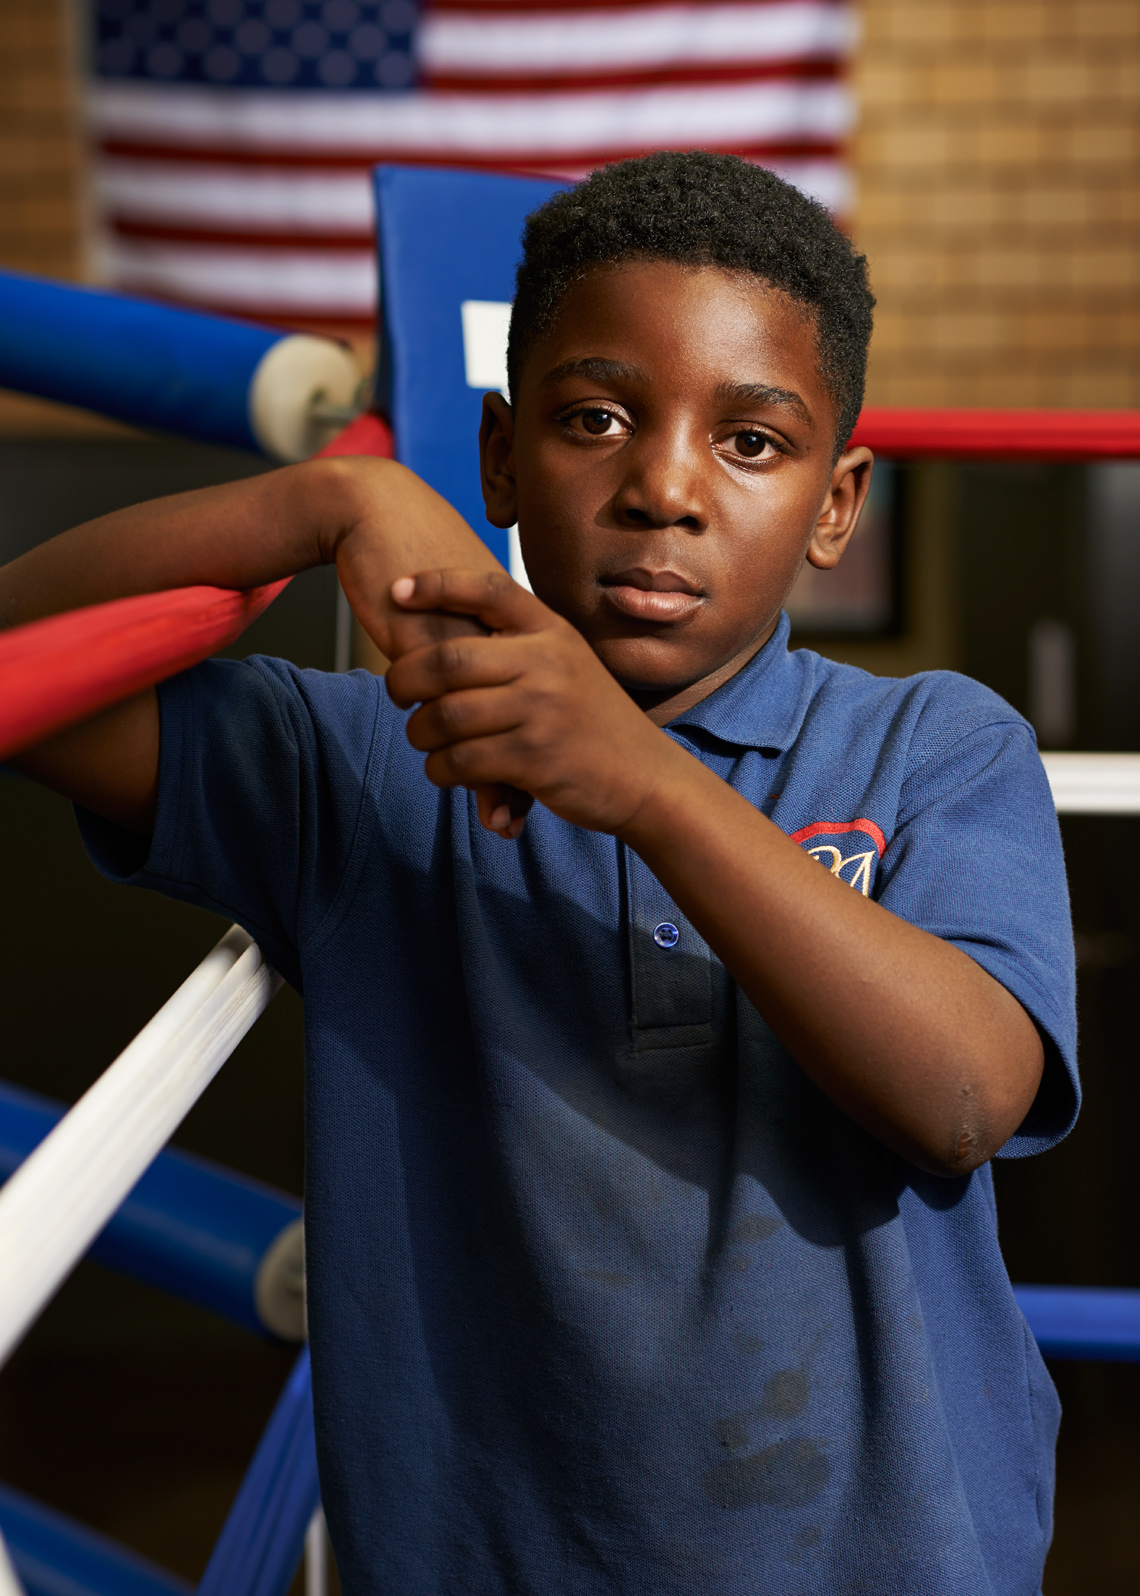 Soulful Boy in Boxing ring